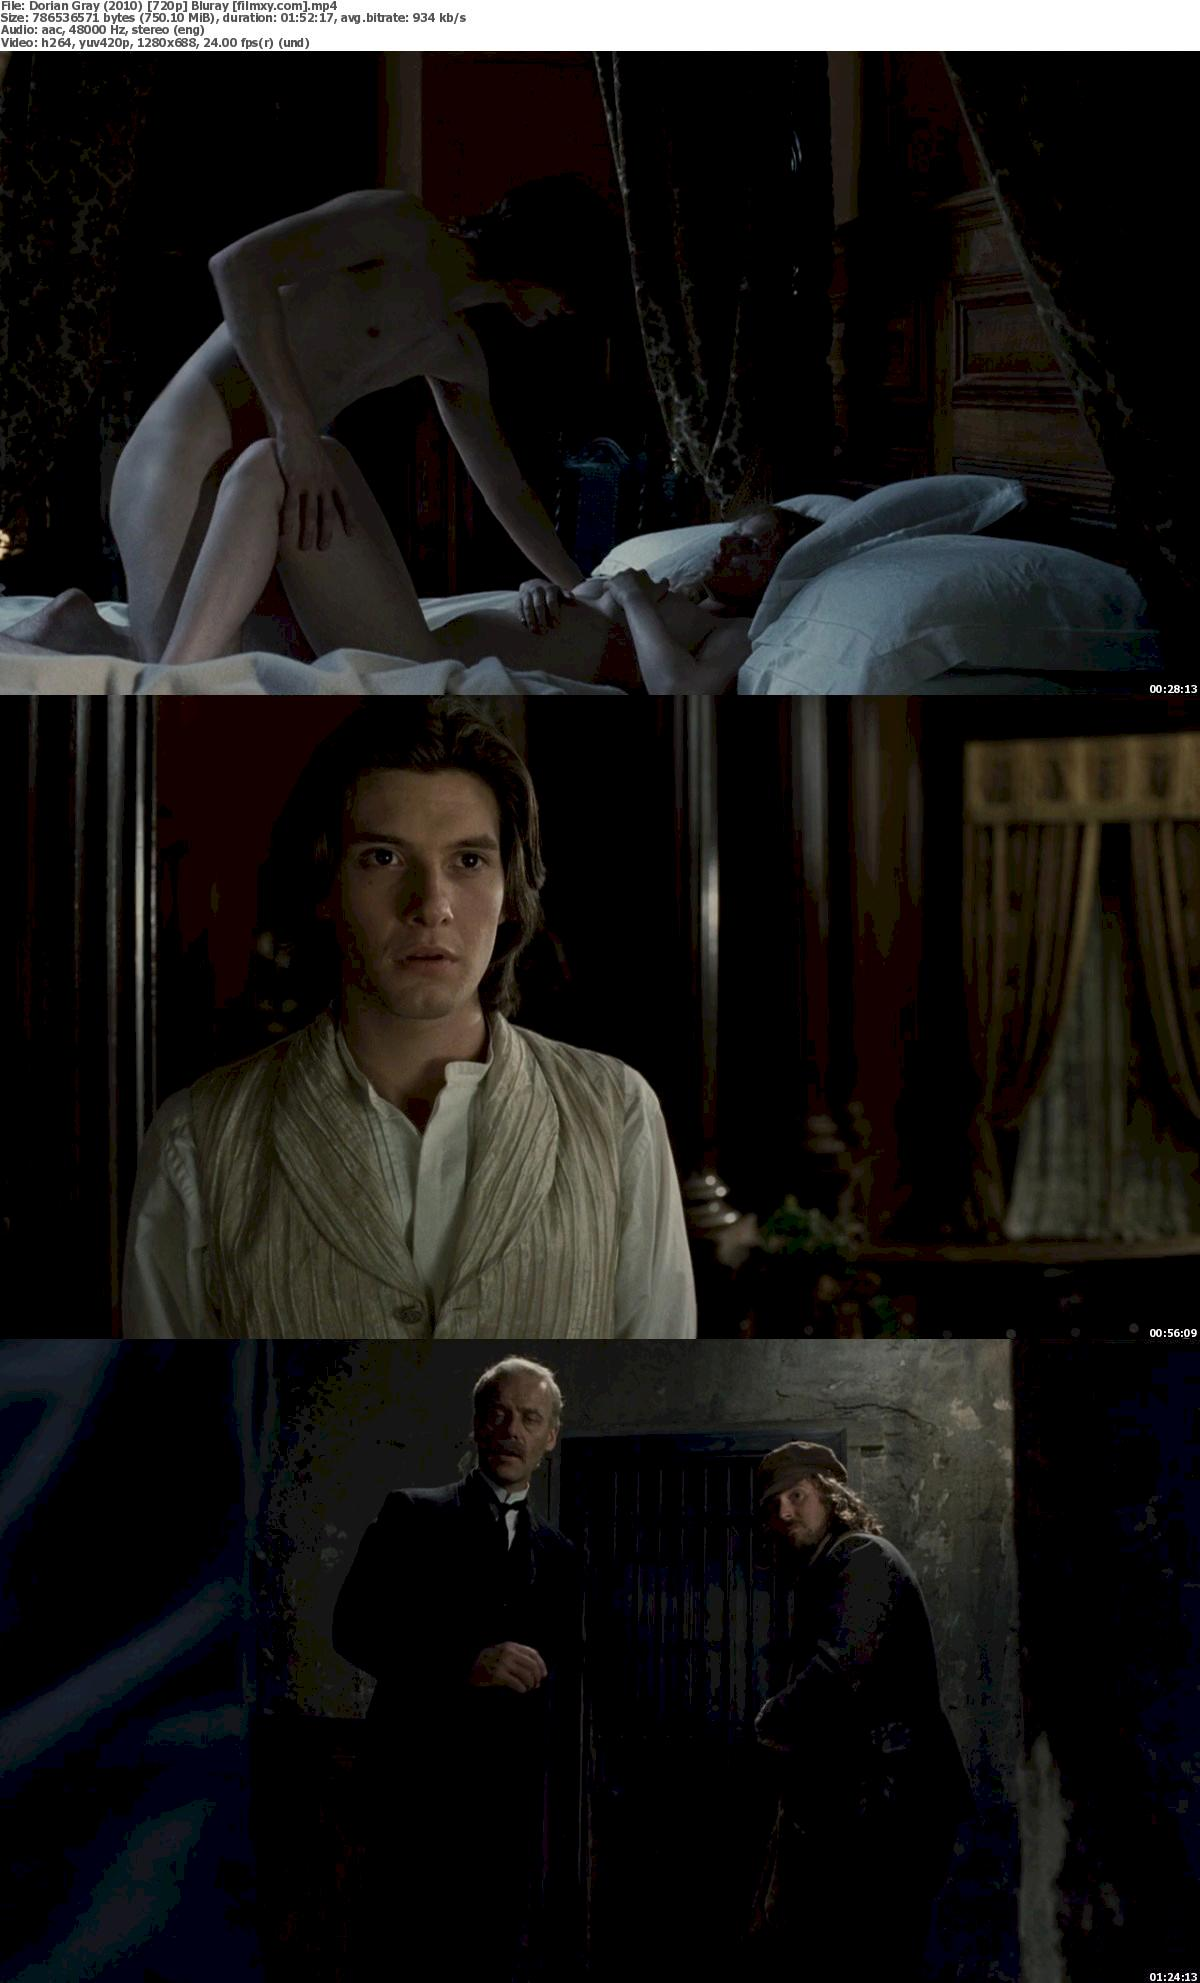 Dorian Gray (2009) 720p & 1080p Bluray Free Download 720p Screenshot